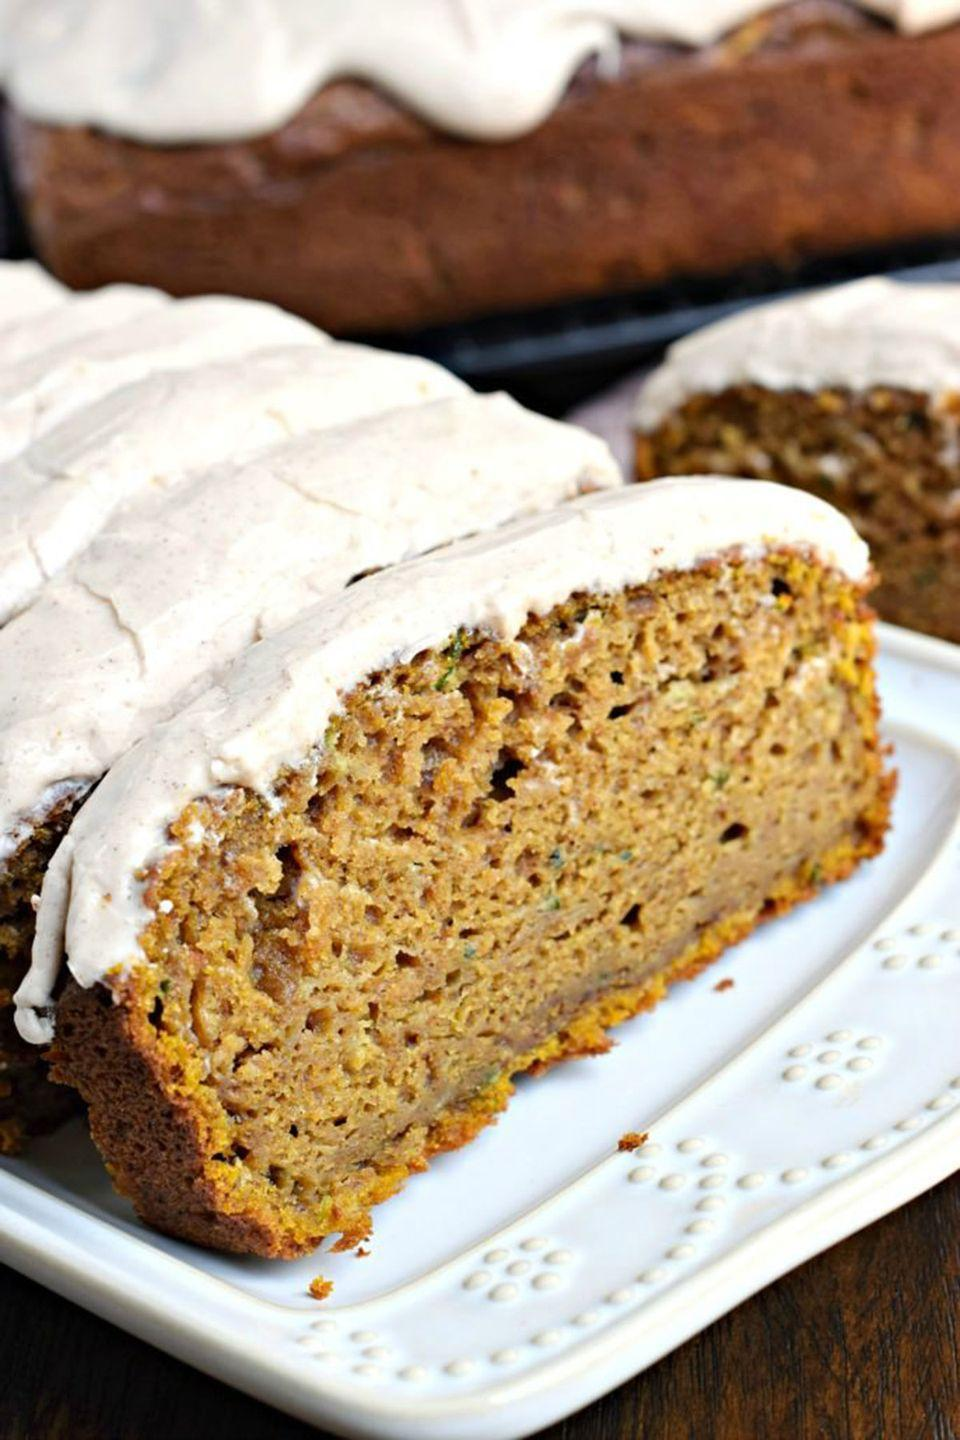 """<p>After one bite of this deliciously moist pumpkin bread, you'll never guess that the secret ingredient was actually a vegetable.</p><p><strong>Get the recipe at <a href=""""http://www.shugarysweets.com/2016/09/pumpkin-zucchini-bread"""" rel=""""nofollow noopener"""" target=""""_blank"""" data-ylk=""""slk:Shugary Sweets"""" class=""""link rapid-noclick-resp"""">Shugary Sweets</a>. </strong></p>"""